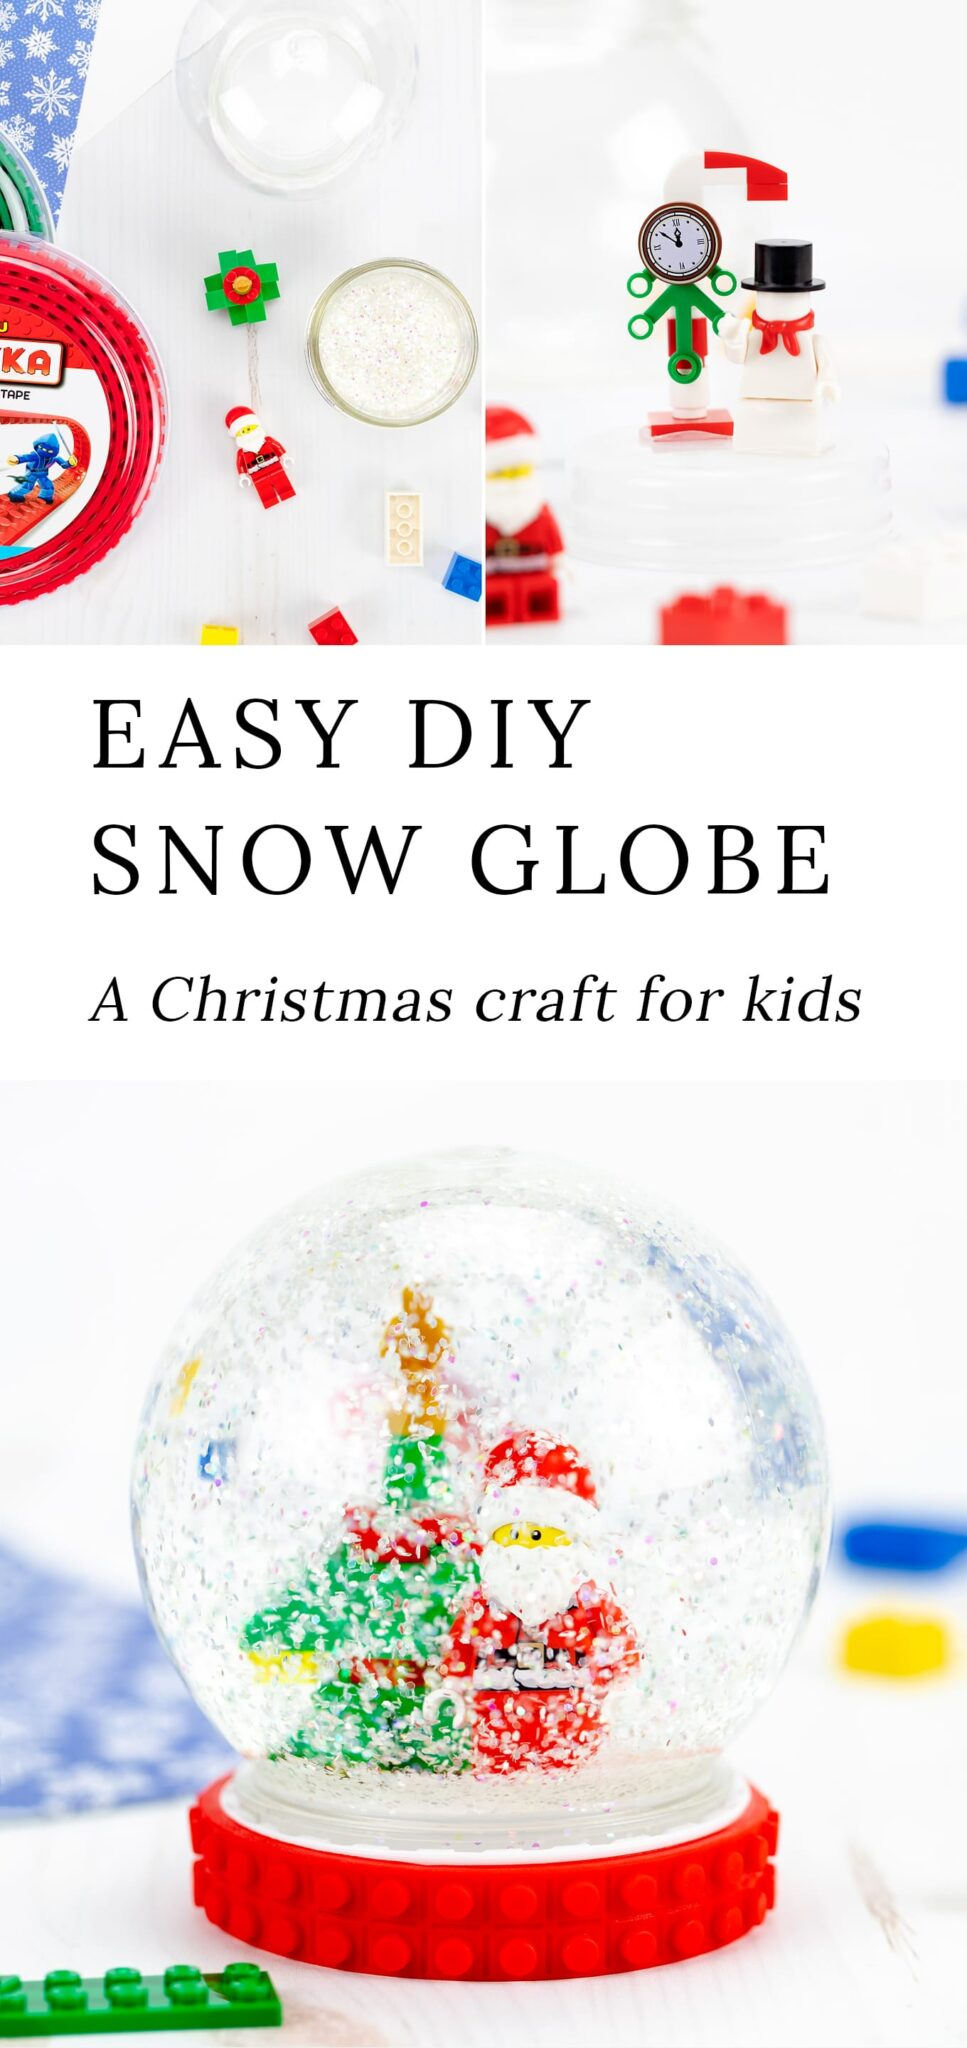 DIY Snow Globe Instructions and Video Tutorial